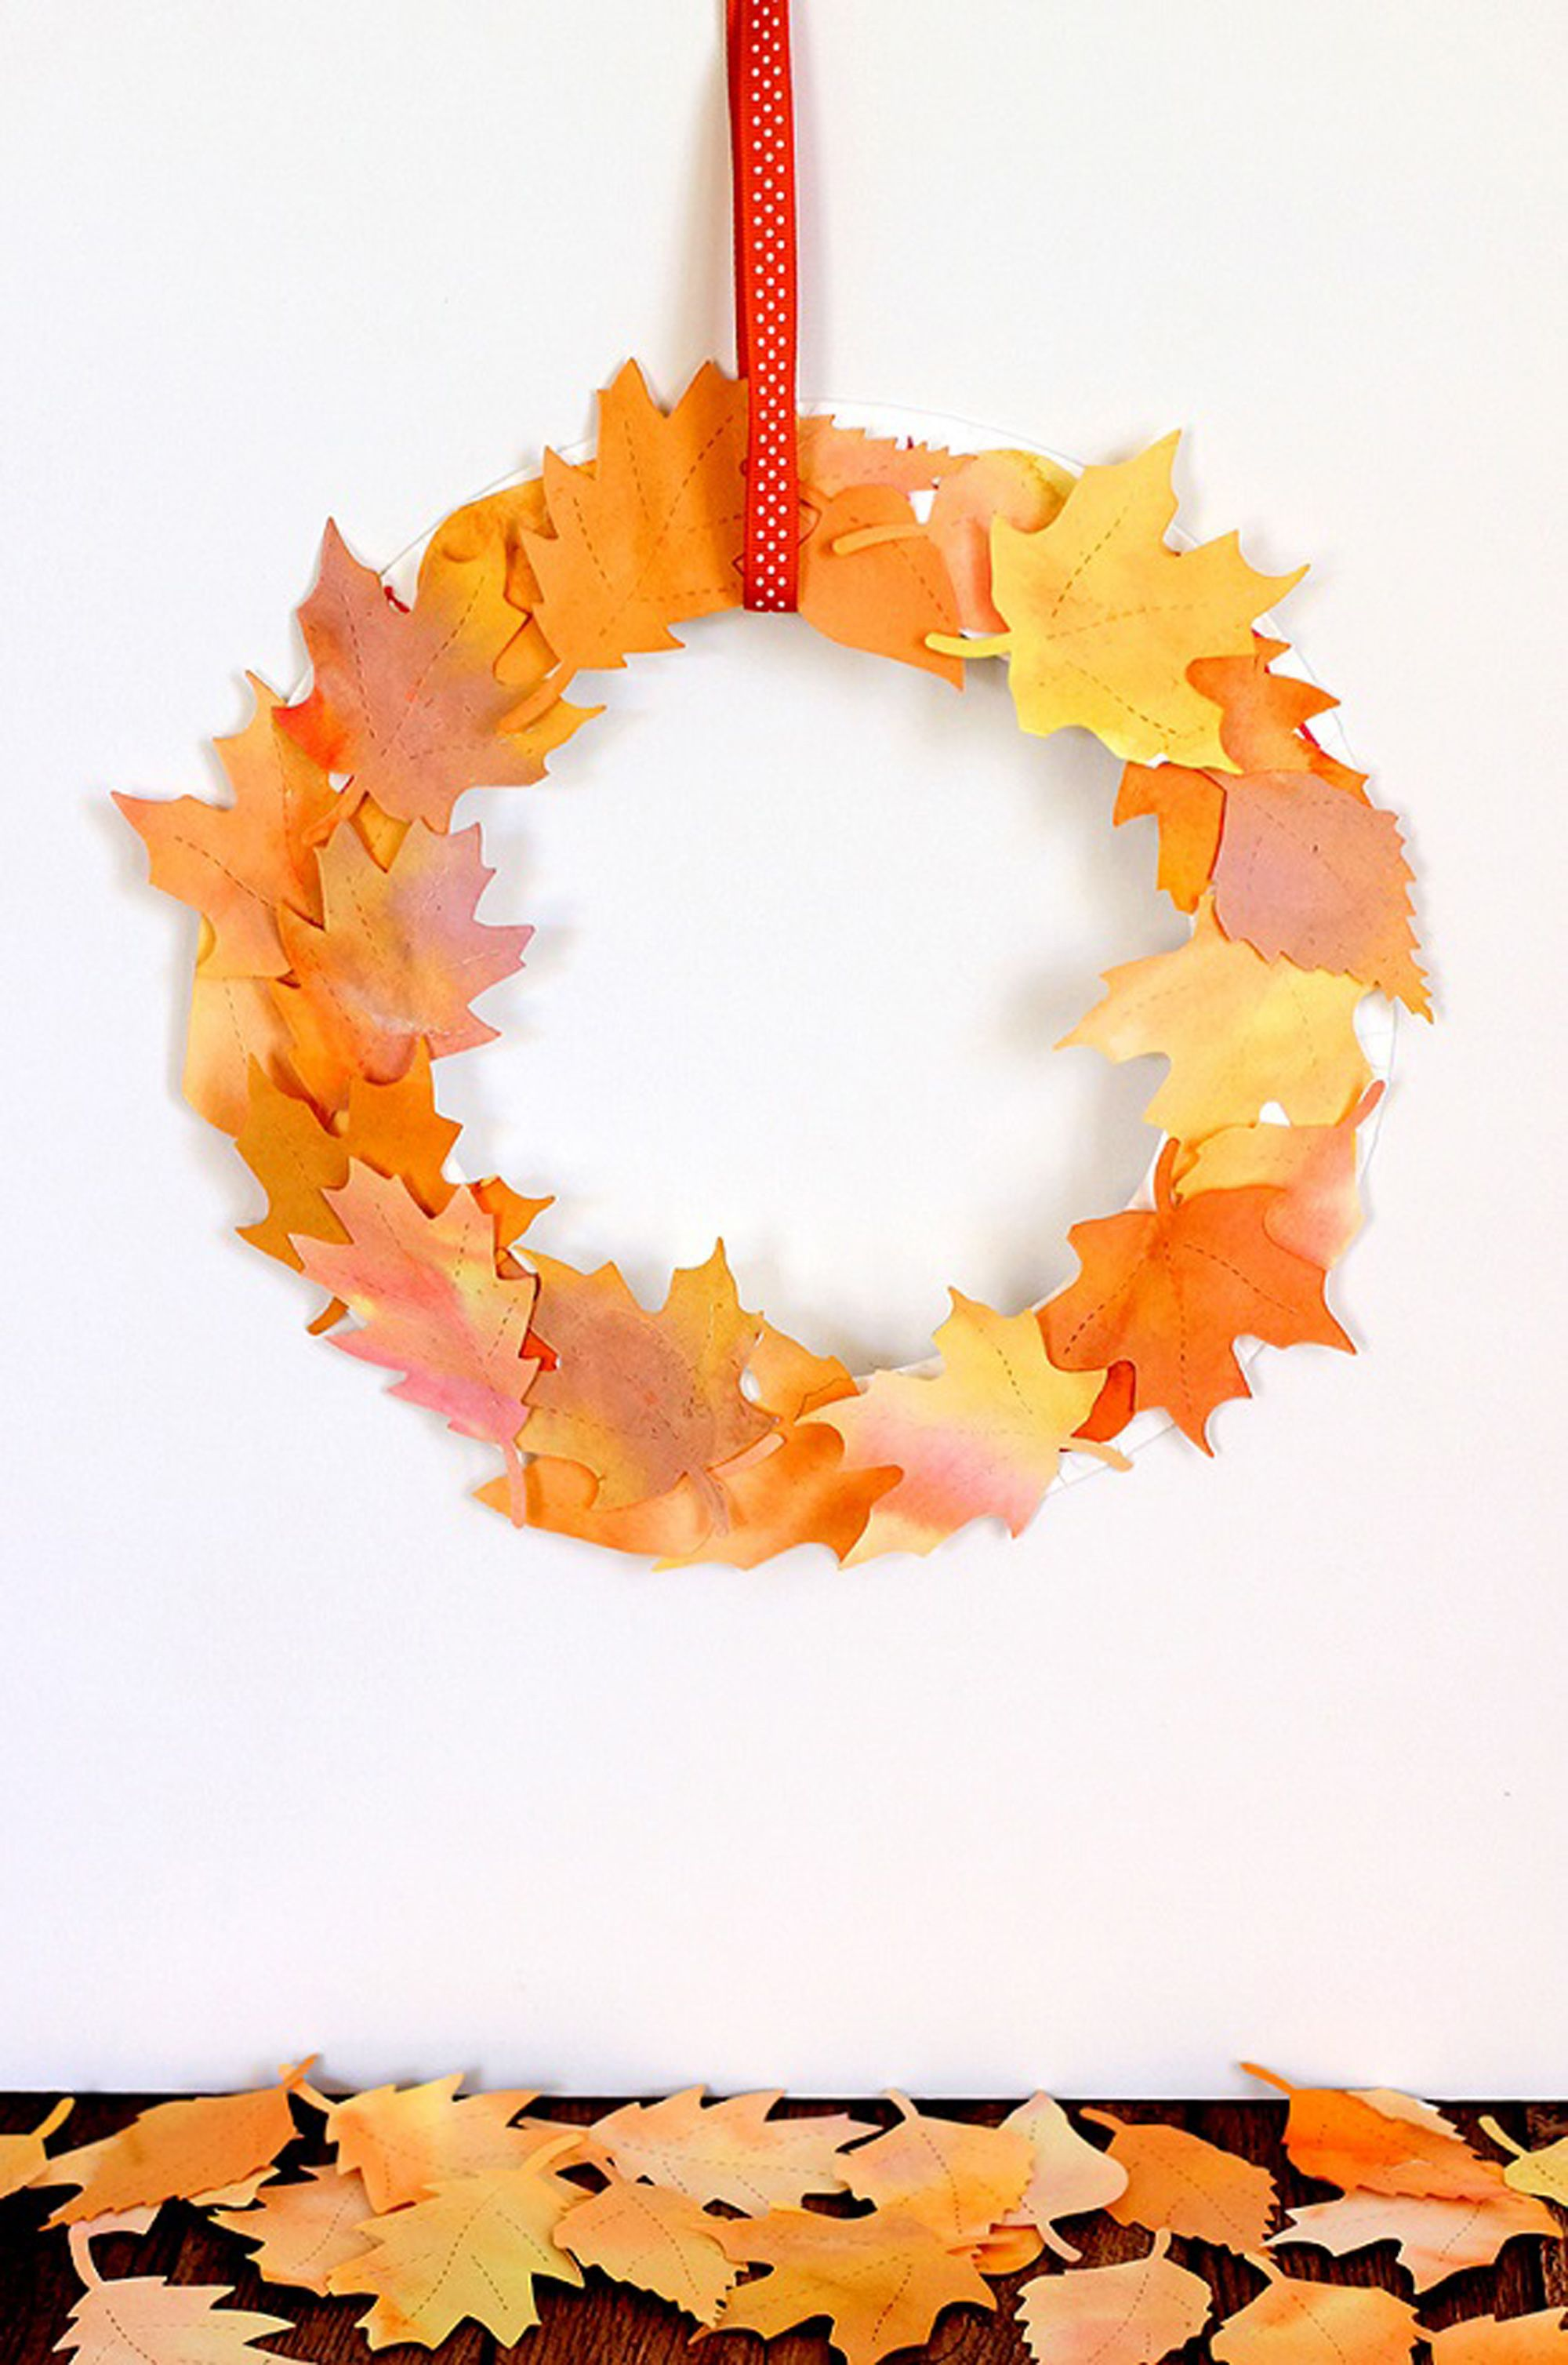 Fall Arts And Craft Ideas With Popsicle Sticksfor Preschoolers